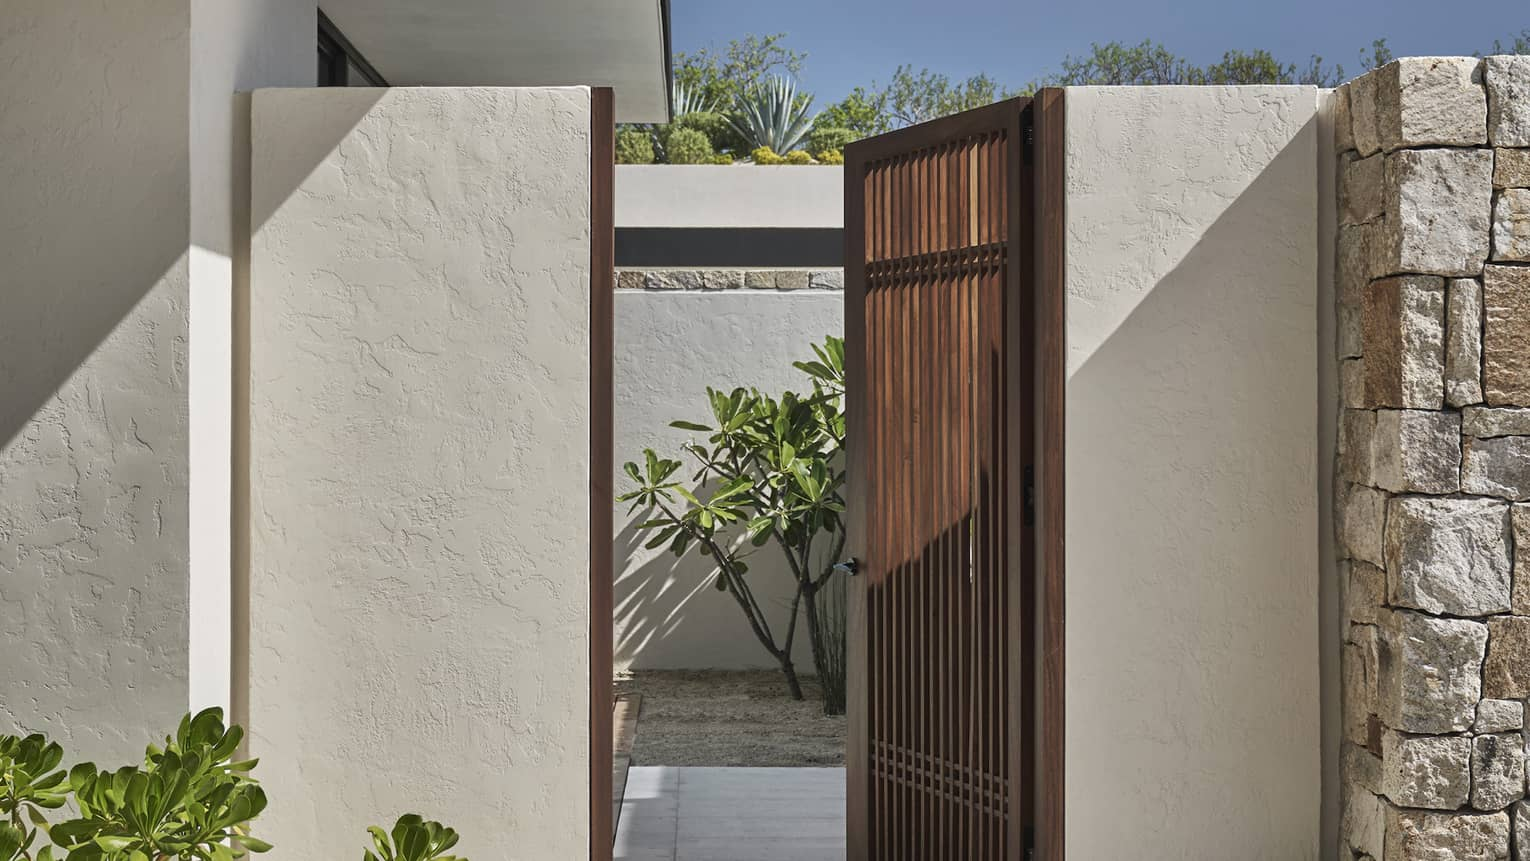 A wooden paneled outdoor gate is opened to a courtyard off the side of a white stucco house